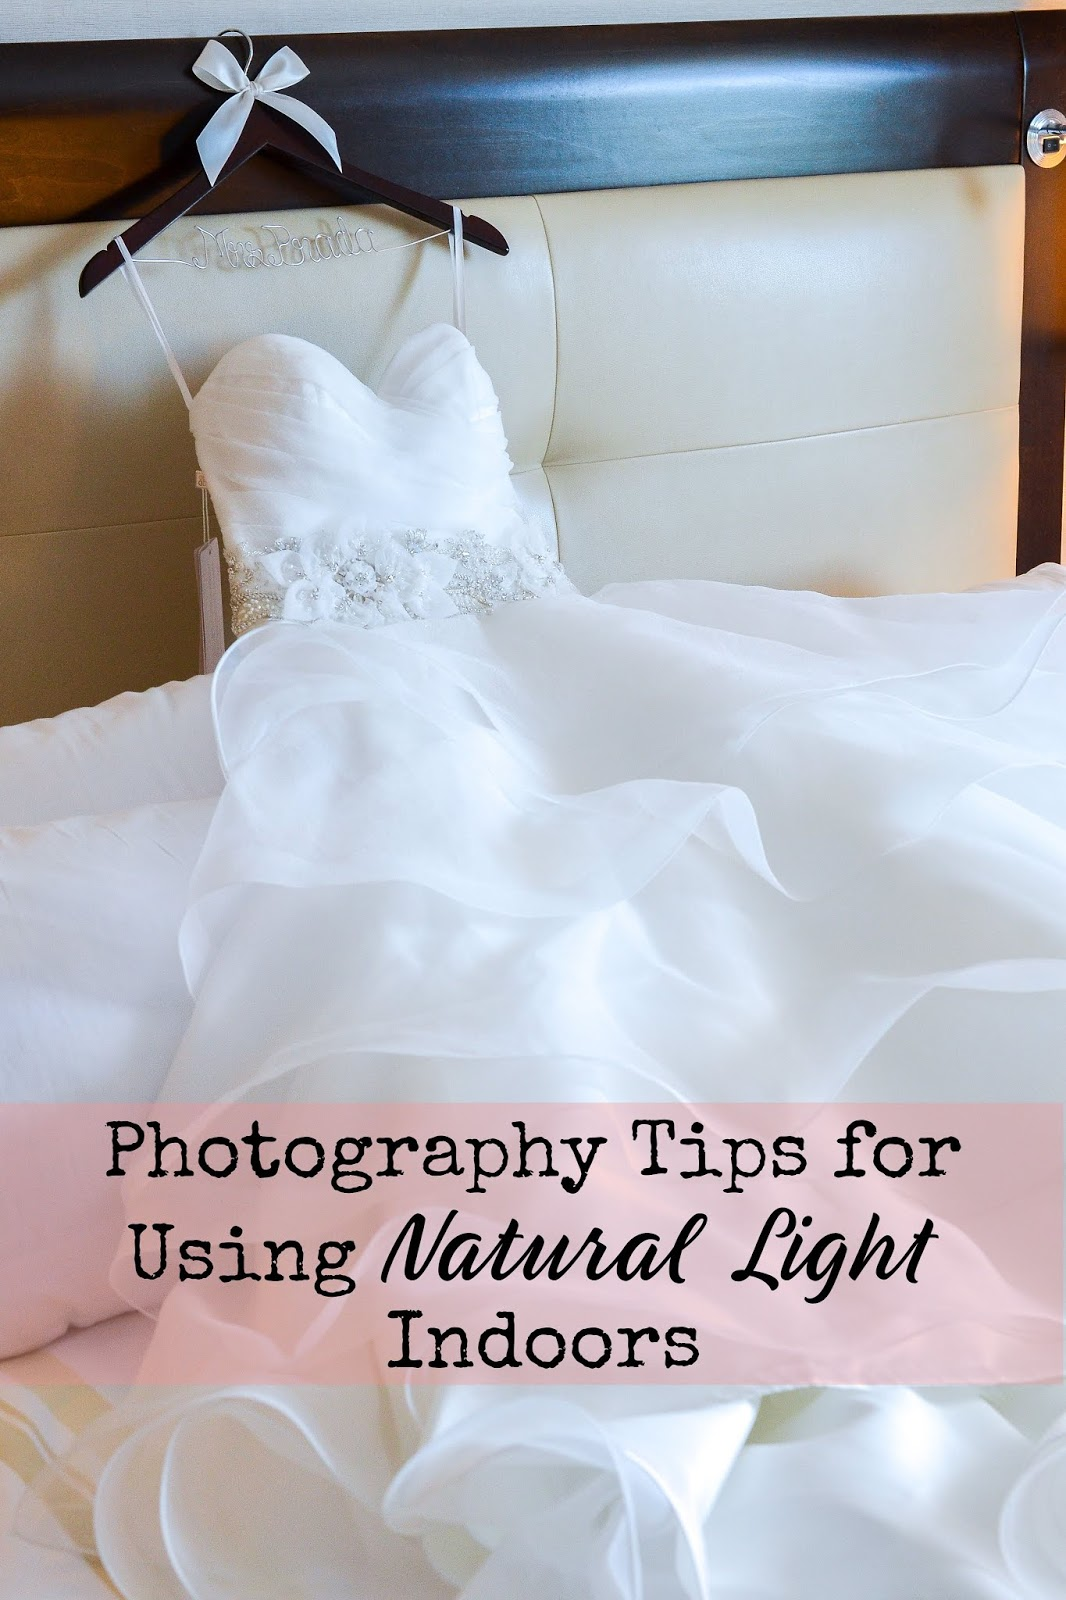 How to use natural light indoors to get great photos